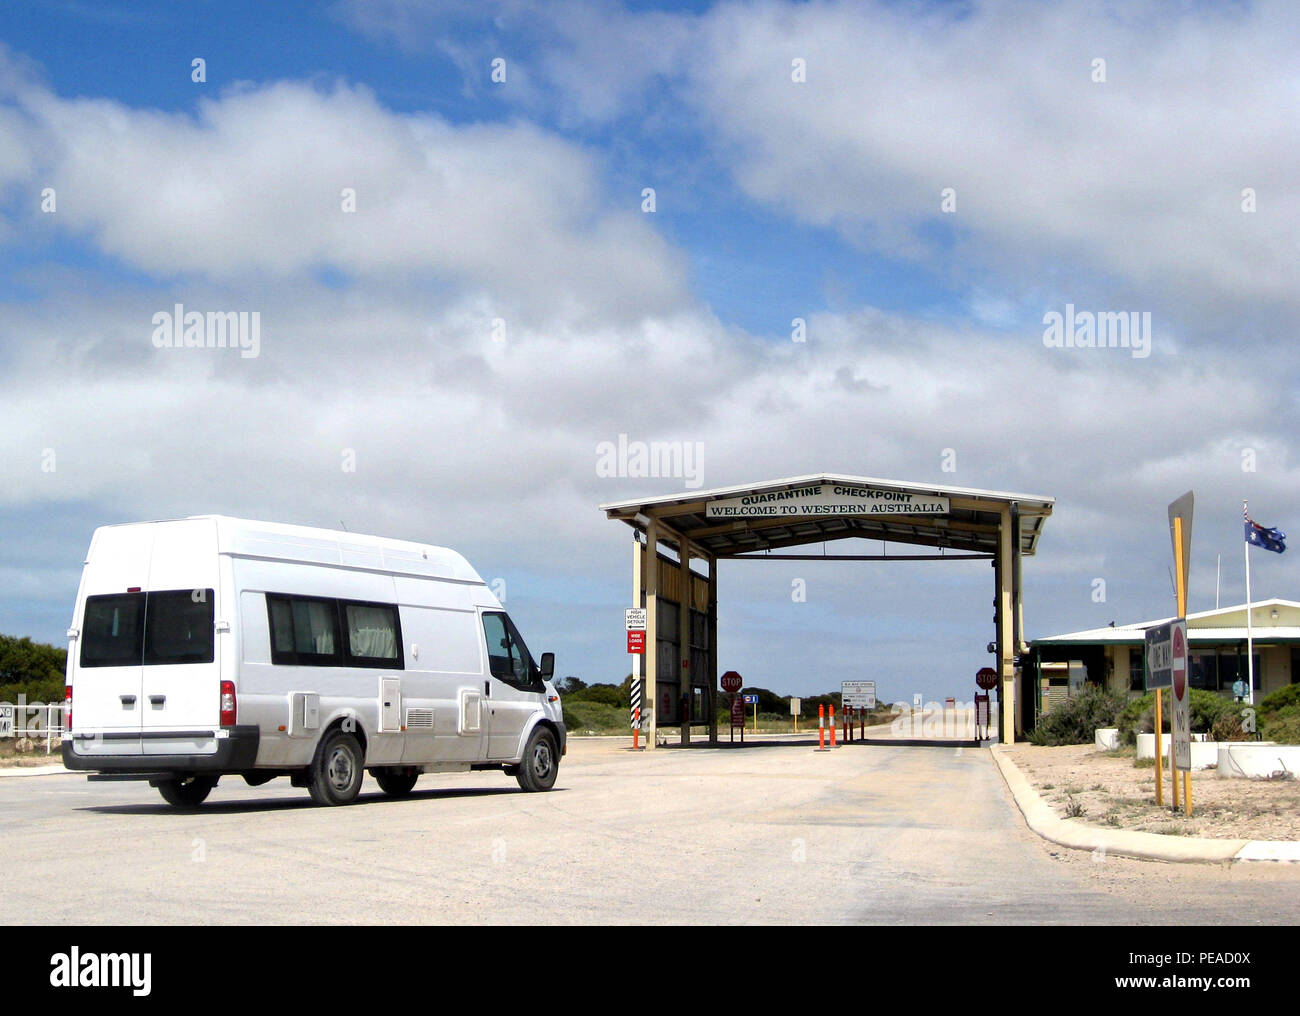 Camper at the Quarantine checkpoint between Western Australia and South Australia Stock Photo